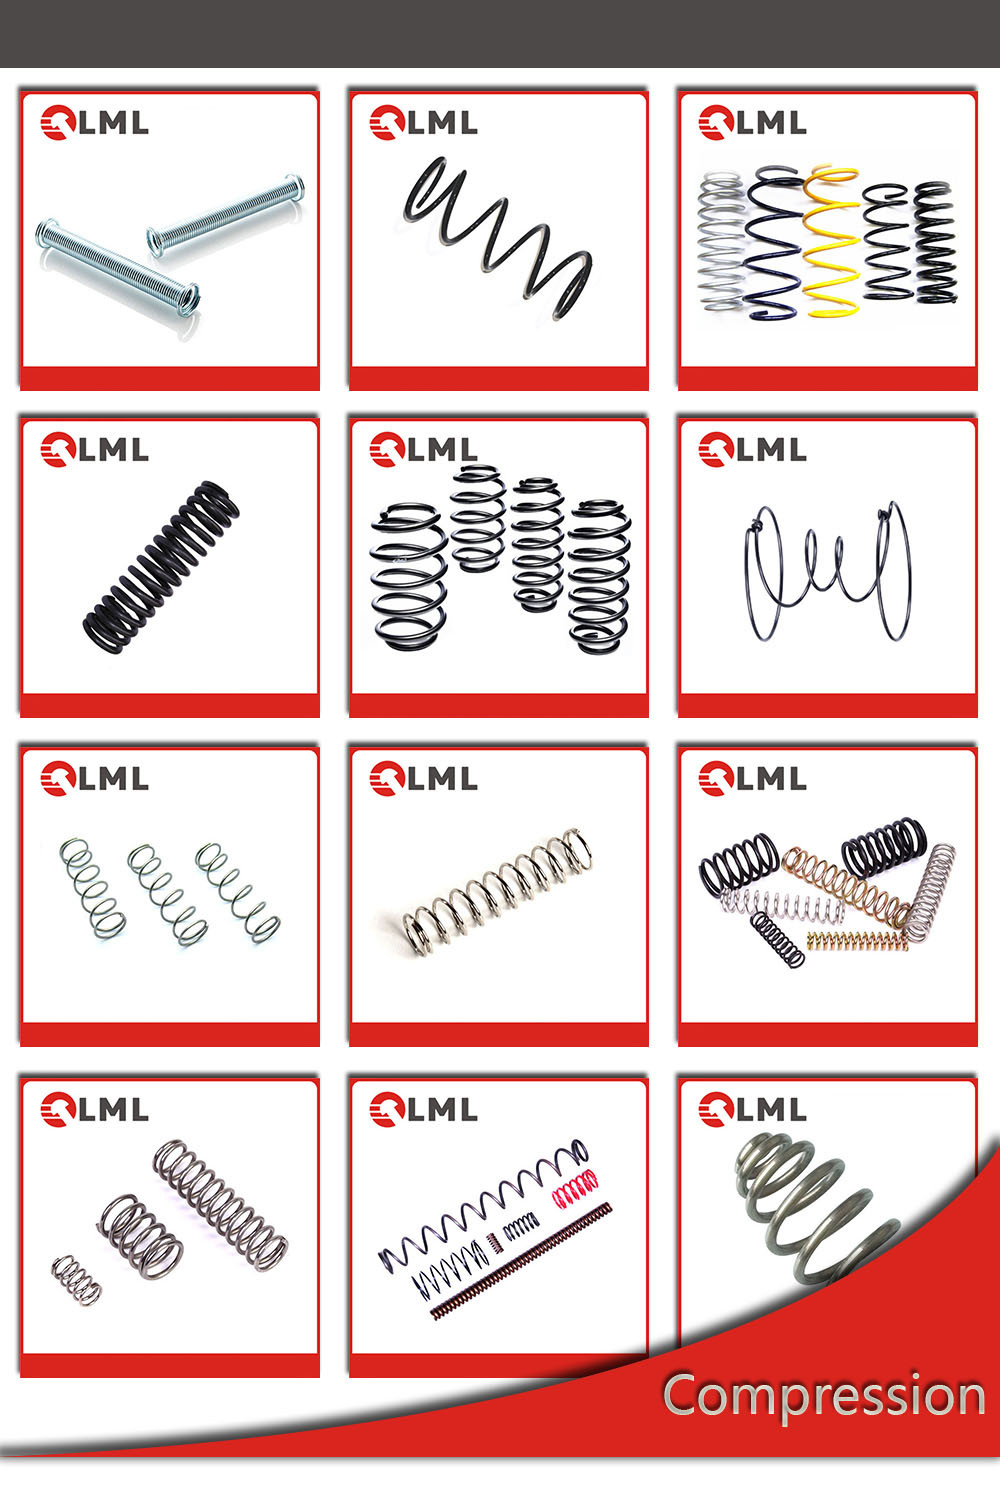 OEM Cheap Mini Composite Leaf Spring, Small Leaf Spring Manufacture, Different Types Of Leaf Springs S04